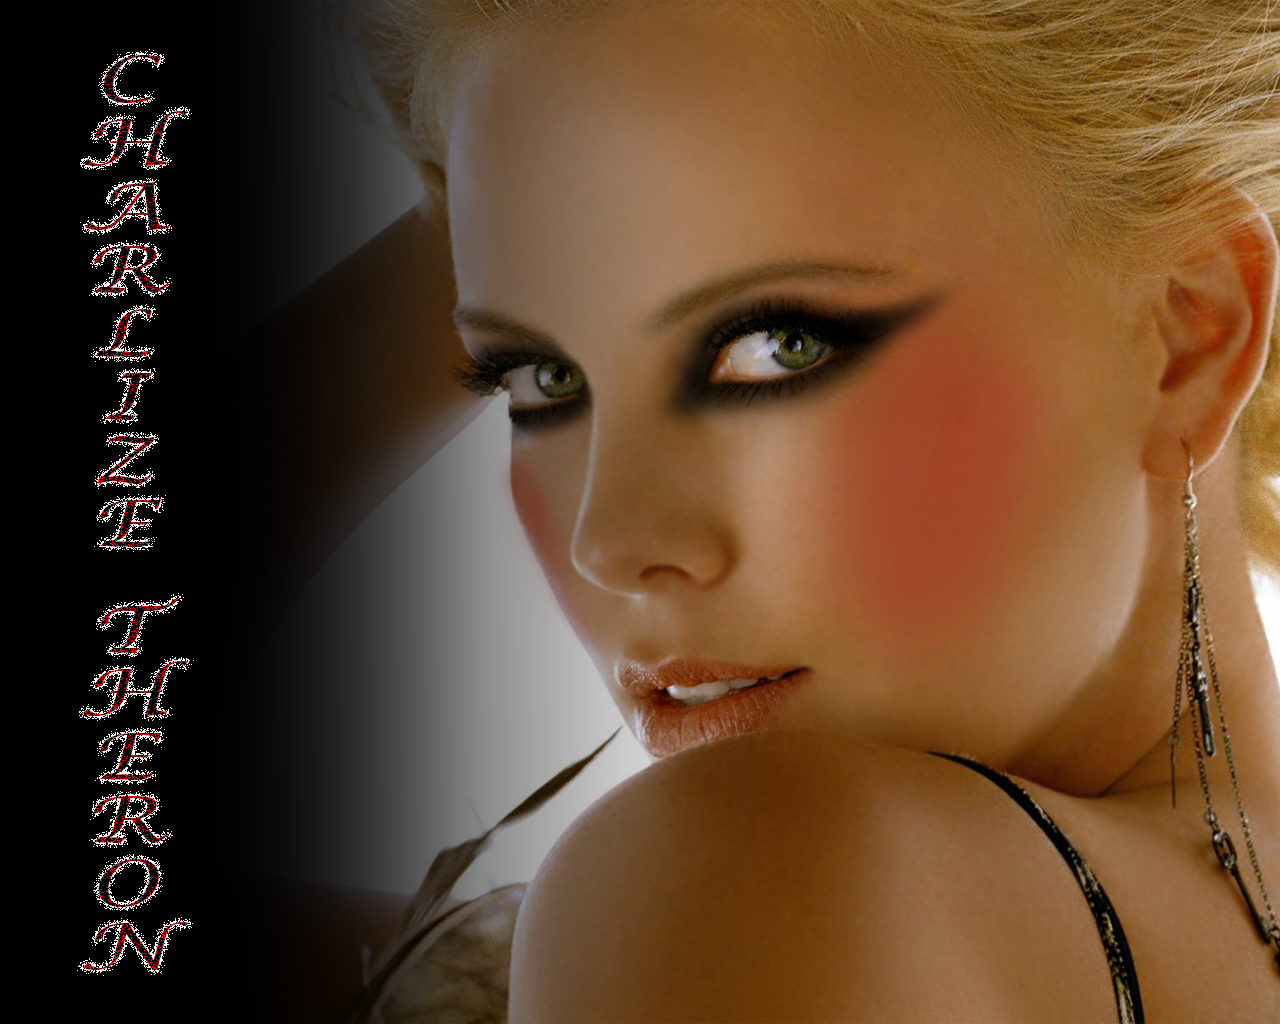 Charlize+Theron+Pictures-Charlize+Theron+Pictures.jpeg Charlize Theron